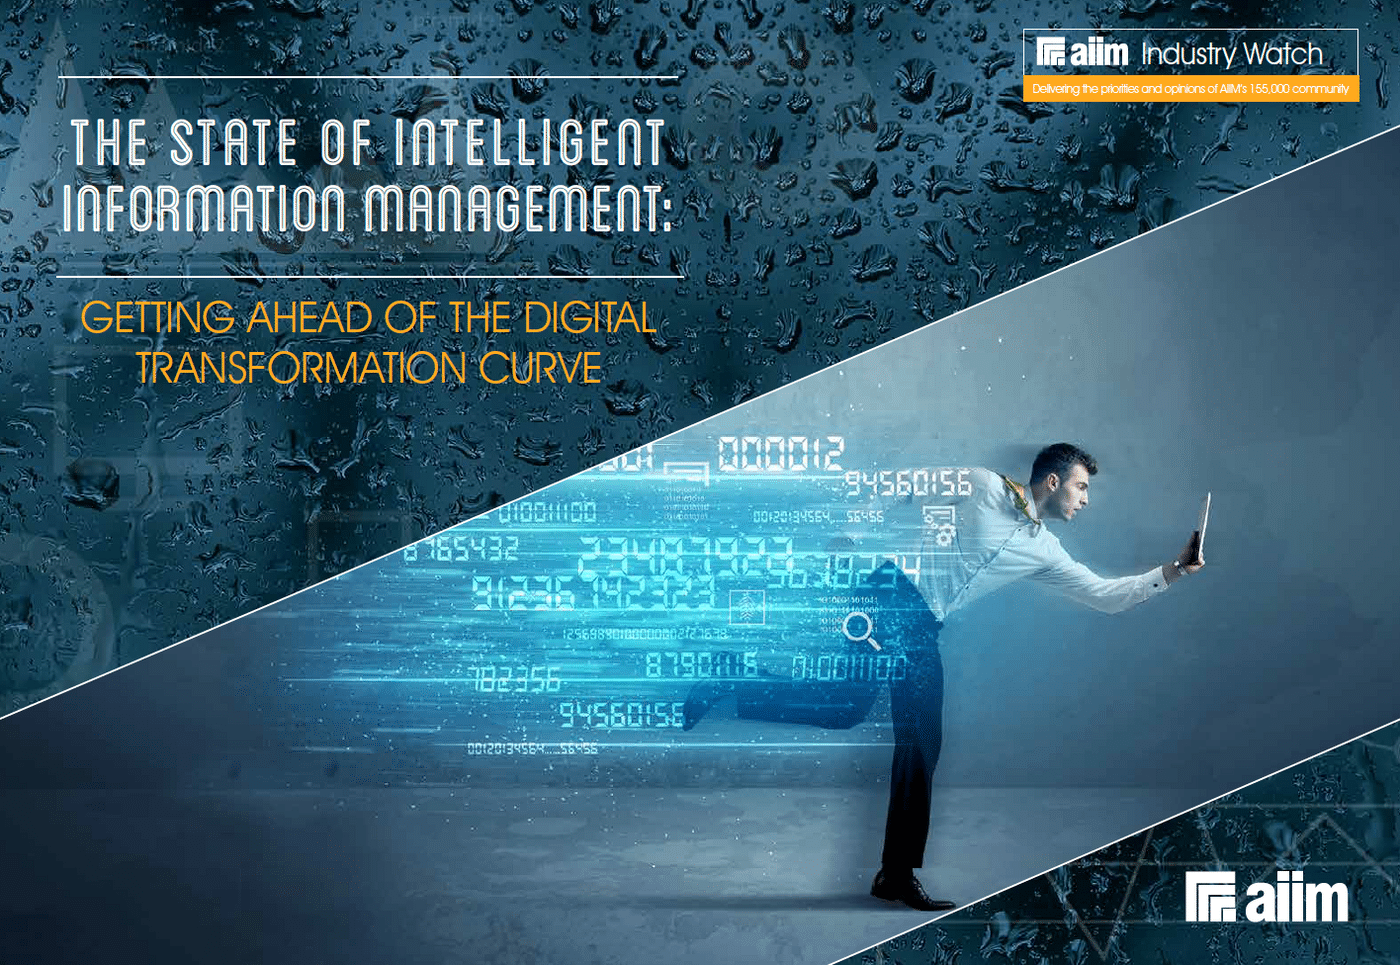 The State of Intelligent Information Management Getting Ahead of the Digital Transformation Curve